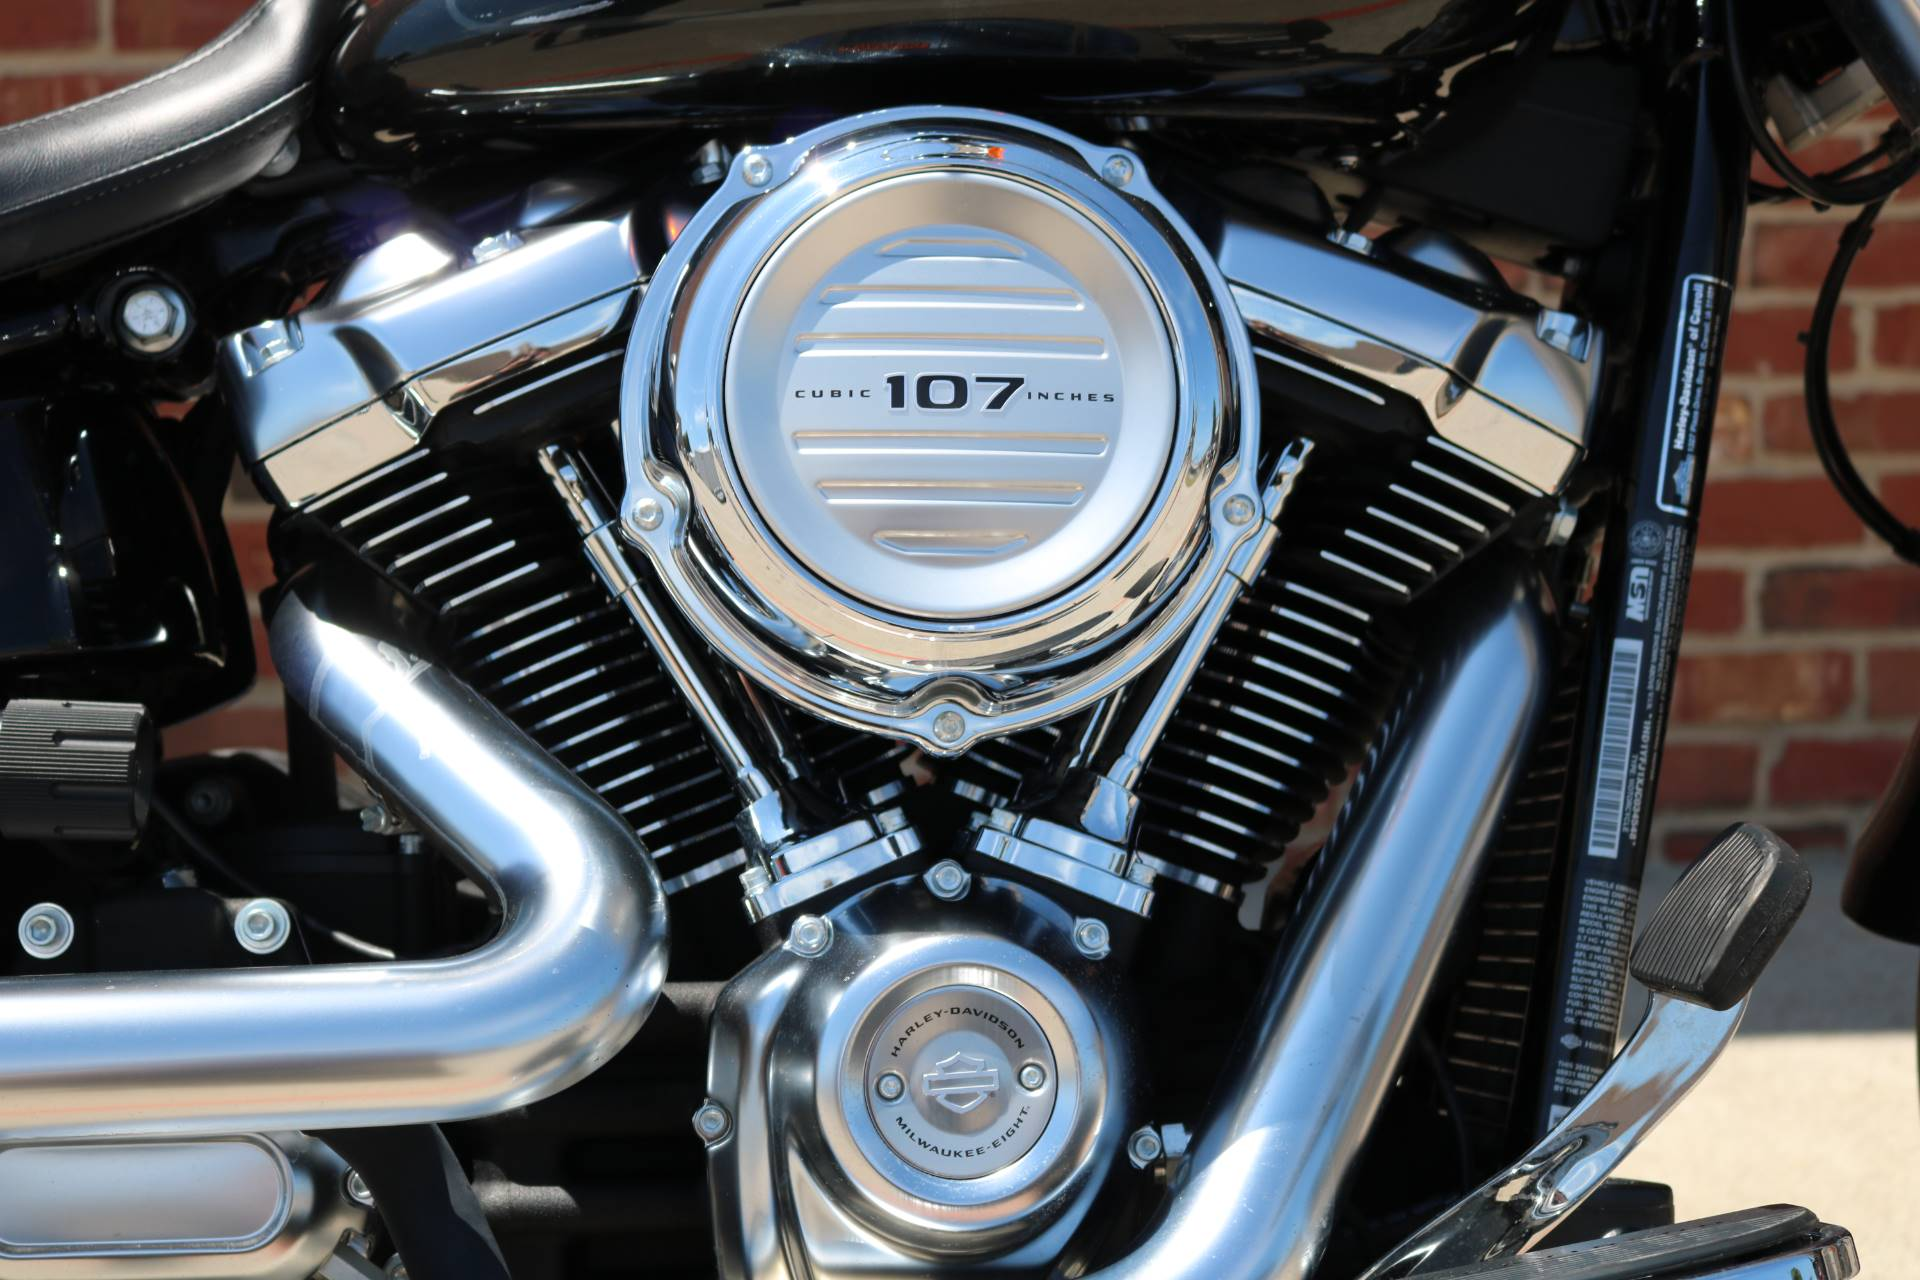 2018 Harley-Davidson Fat Boy® 107 in Ames, Iowa - Photo 4